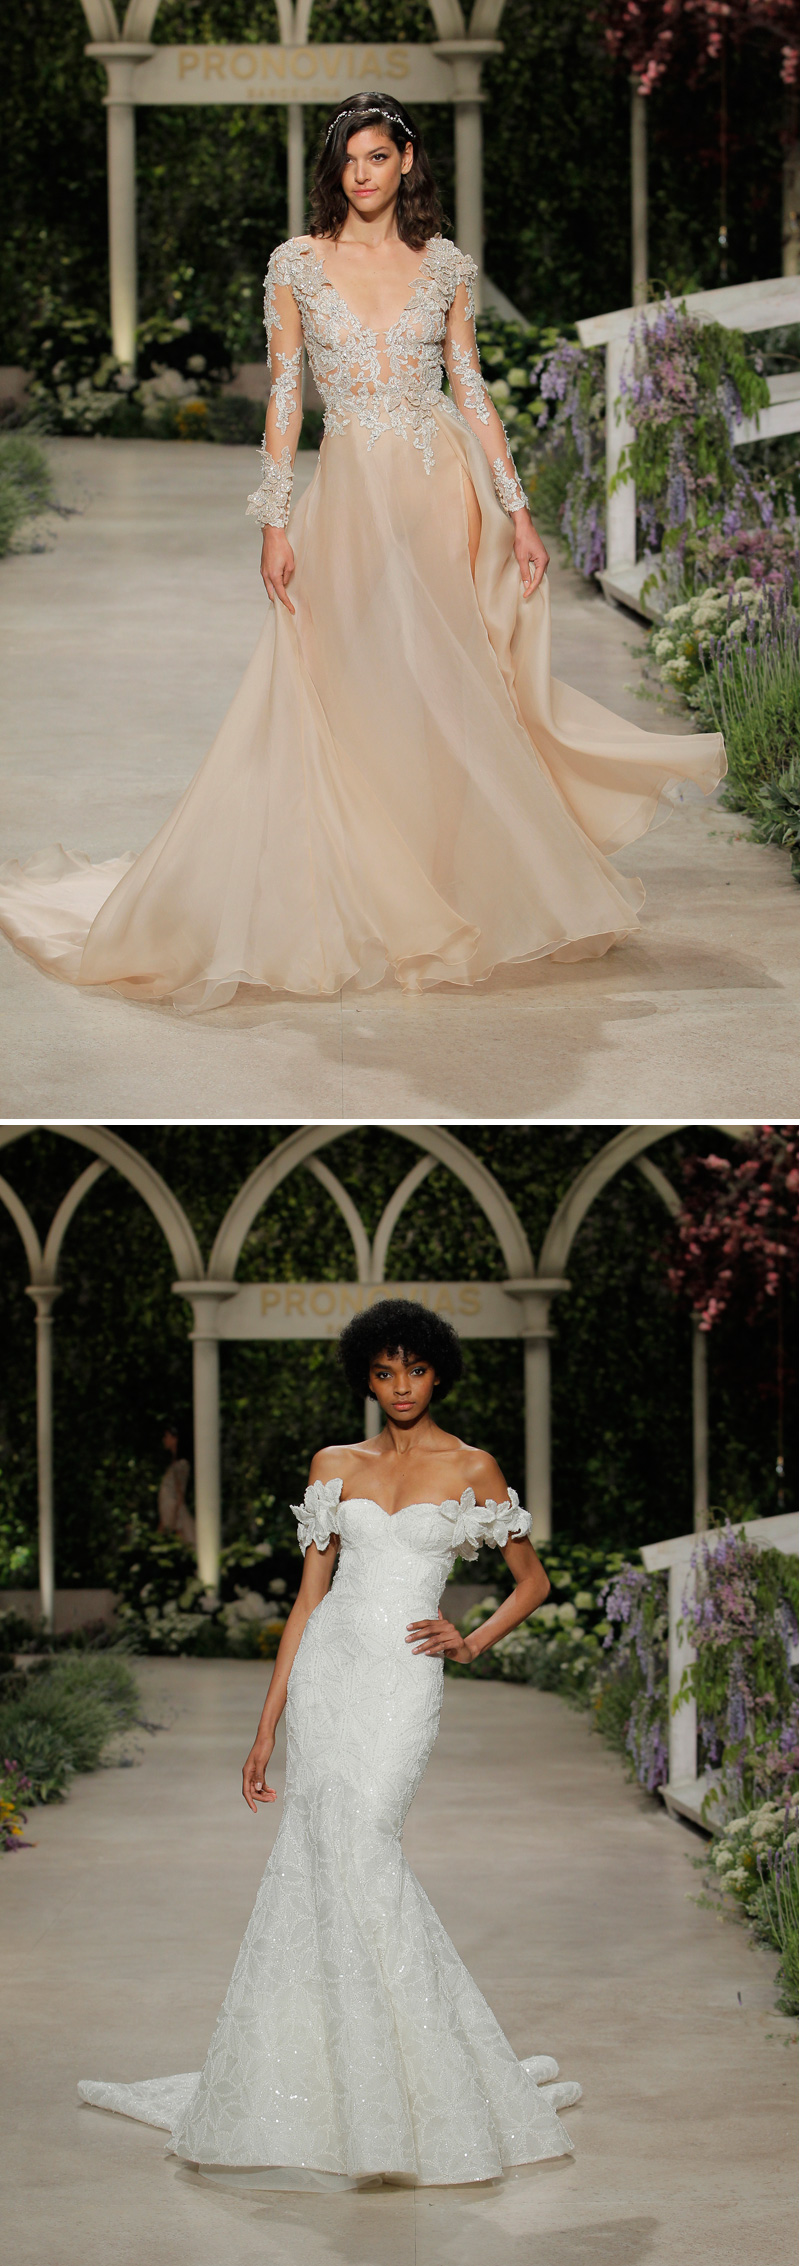 Pronovias, Atelier Pronovias, Atelier Pronovias 2019, Pronovias Fashion Show, Barcelona Bridal Week, Herve Moreau, Cindy Bruna, Romee Strijid, In Bloom, Pronovias In Bloom, Pronovias 2019, Pronovias Dress, In Bloom Pronovias, In Bloom Pronovias Collection